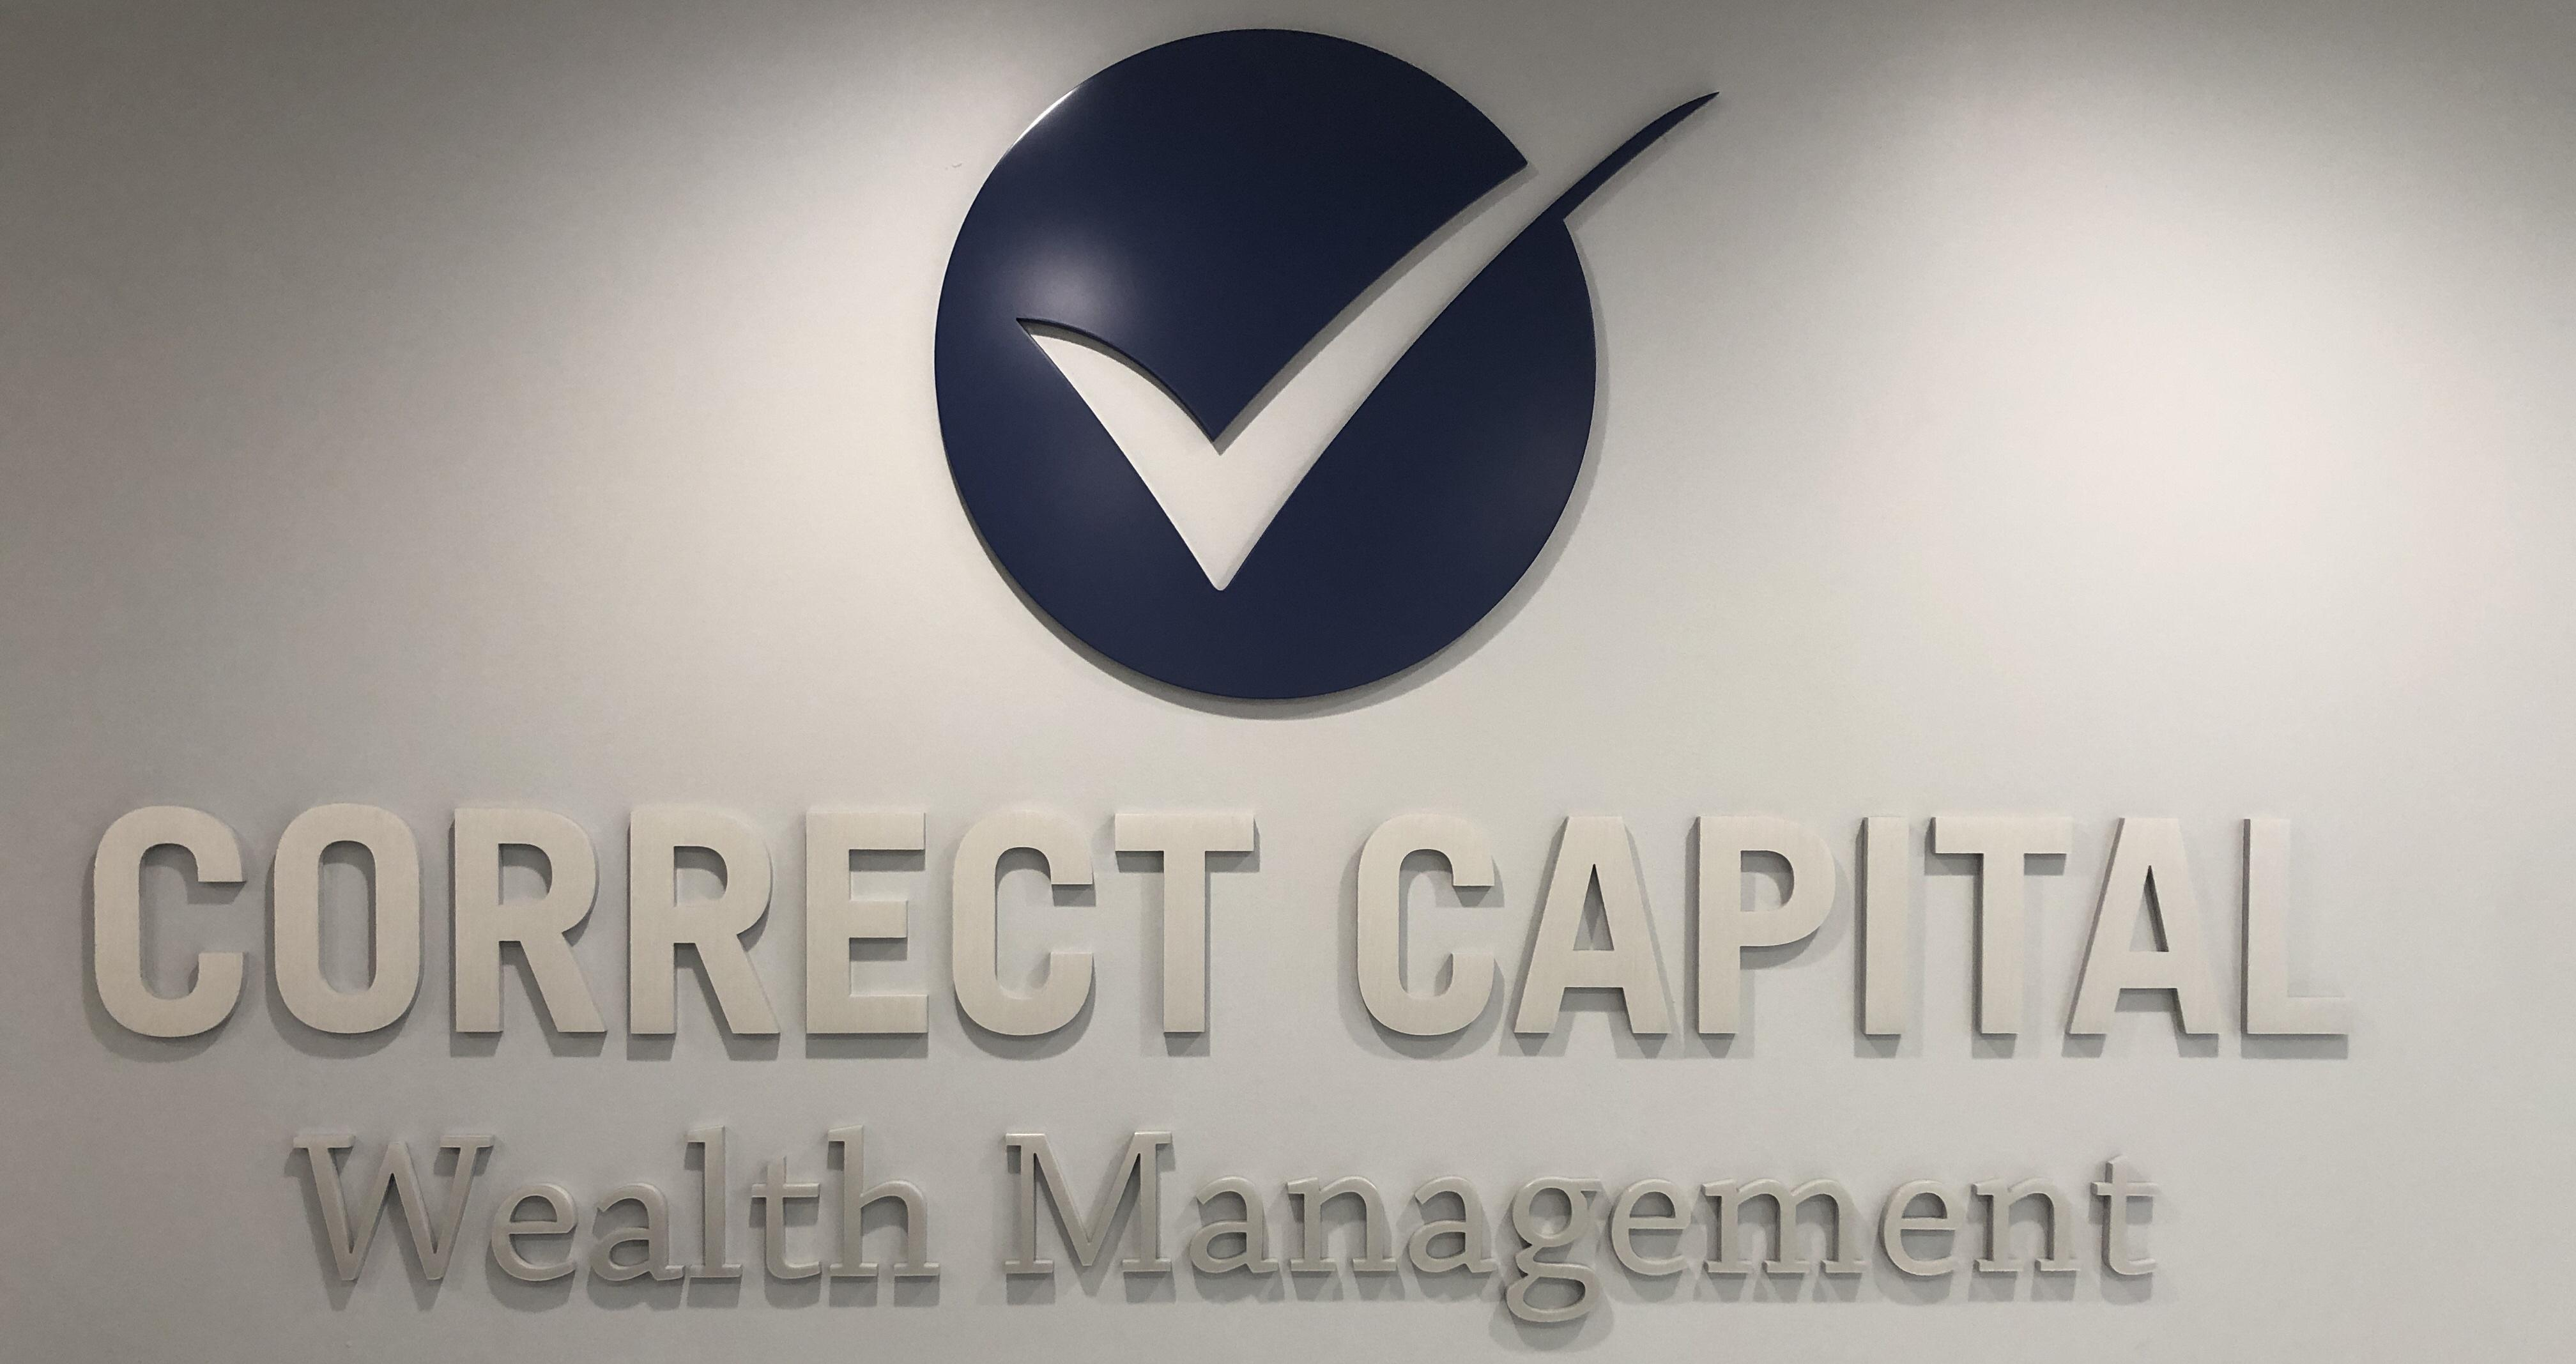 Welcome to Correct Capital Wealth Management Thumbnail